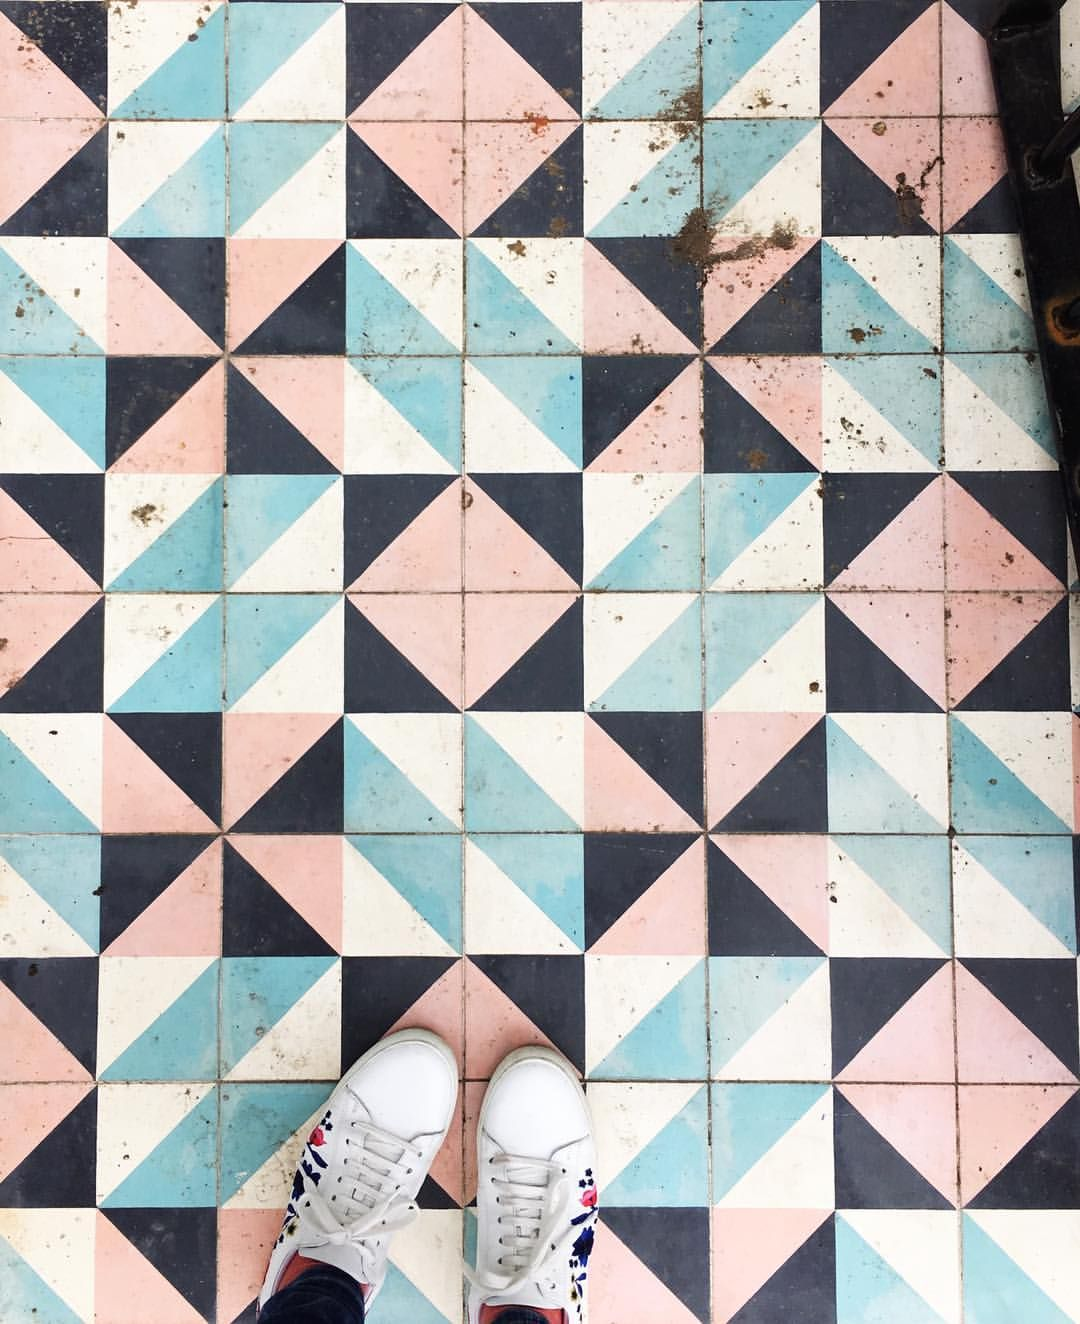 """466 Likes, 15 Comments - ☆ Xanthe - Film & Photography (@xantheb) on Instagram: """"The BEST tiles I've seen in ages... spotted on the way to Broadway Market for some delicious food.…"""""""